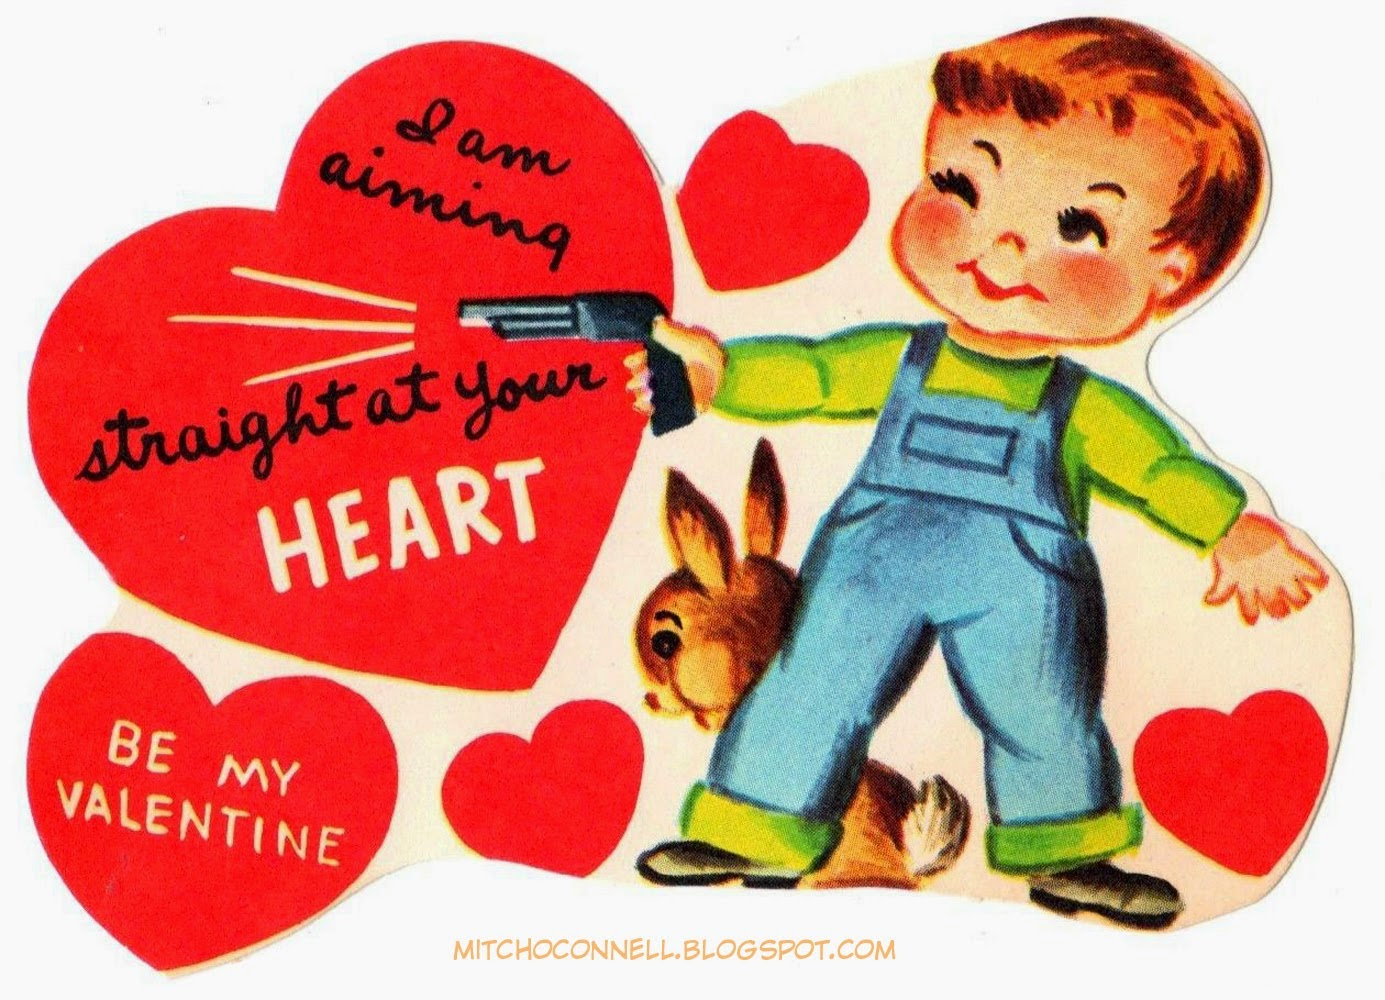 ... Outlandish, Bizarre, Sexist, Eccentric And Far Out Funny Cards... These  Valentineu0027s Day Cards Below Are From The Mitch Ou0027Connell Collection.